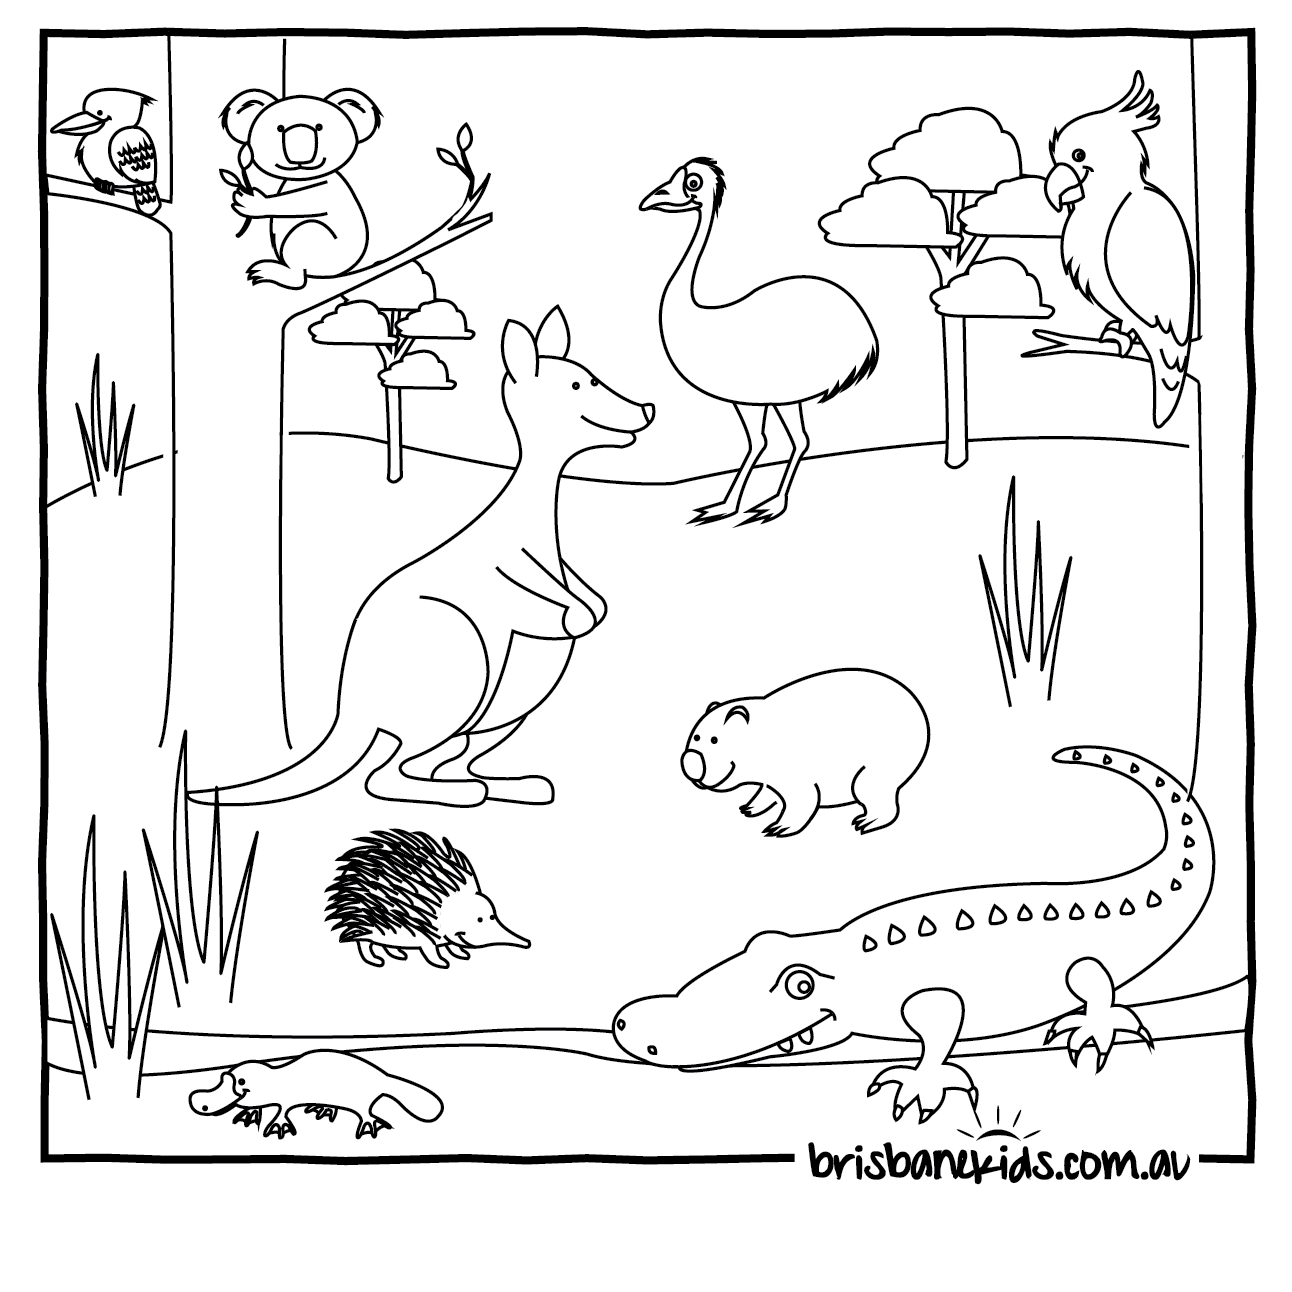 Australian Animals Colouring Pages   Coloring Pages Of All Ages - Free Printable Pictures Of Australian Animals